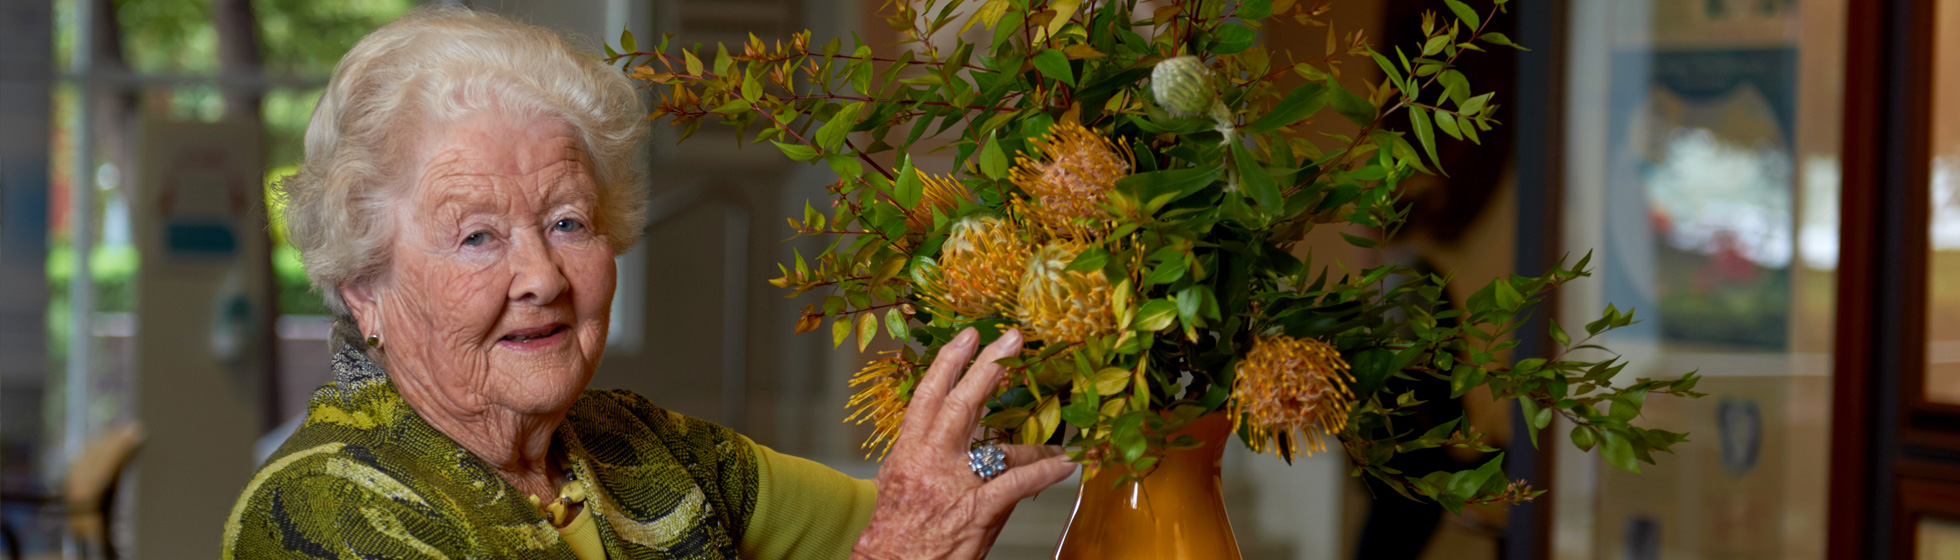 Volunteer arranging flowers